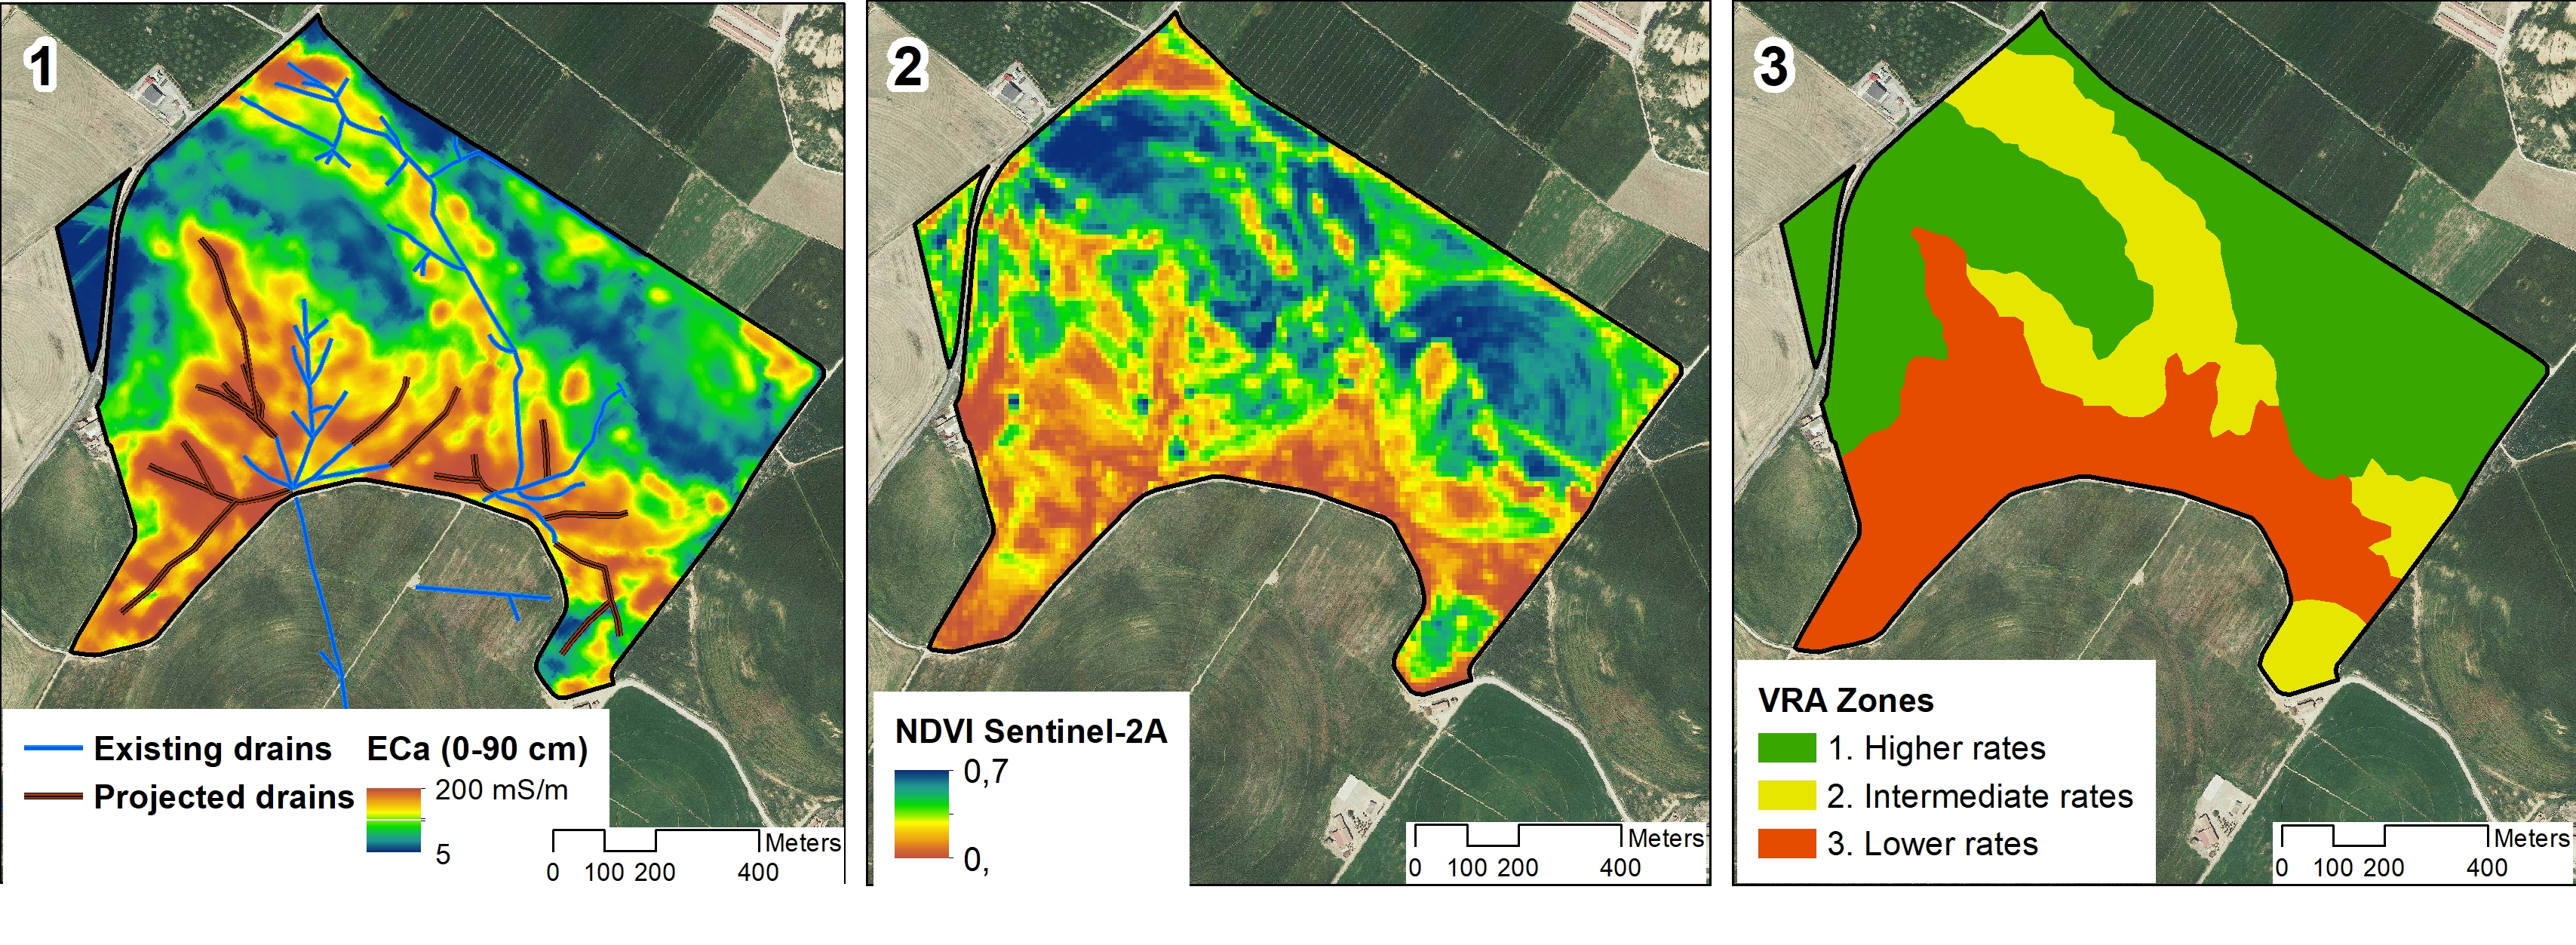 1: ECa map and existing drainage network. 2: NDVI map from Sentinel-2 shows the stage of development of fields in the middle of the previous season's crop. 3: Variable-Rate-Application zones derived from 1 and 2 for variable seeding and fertilizing of the